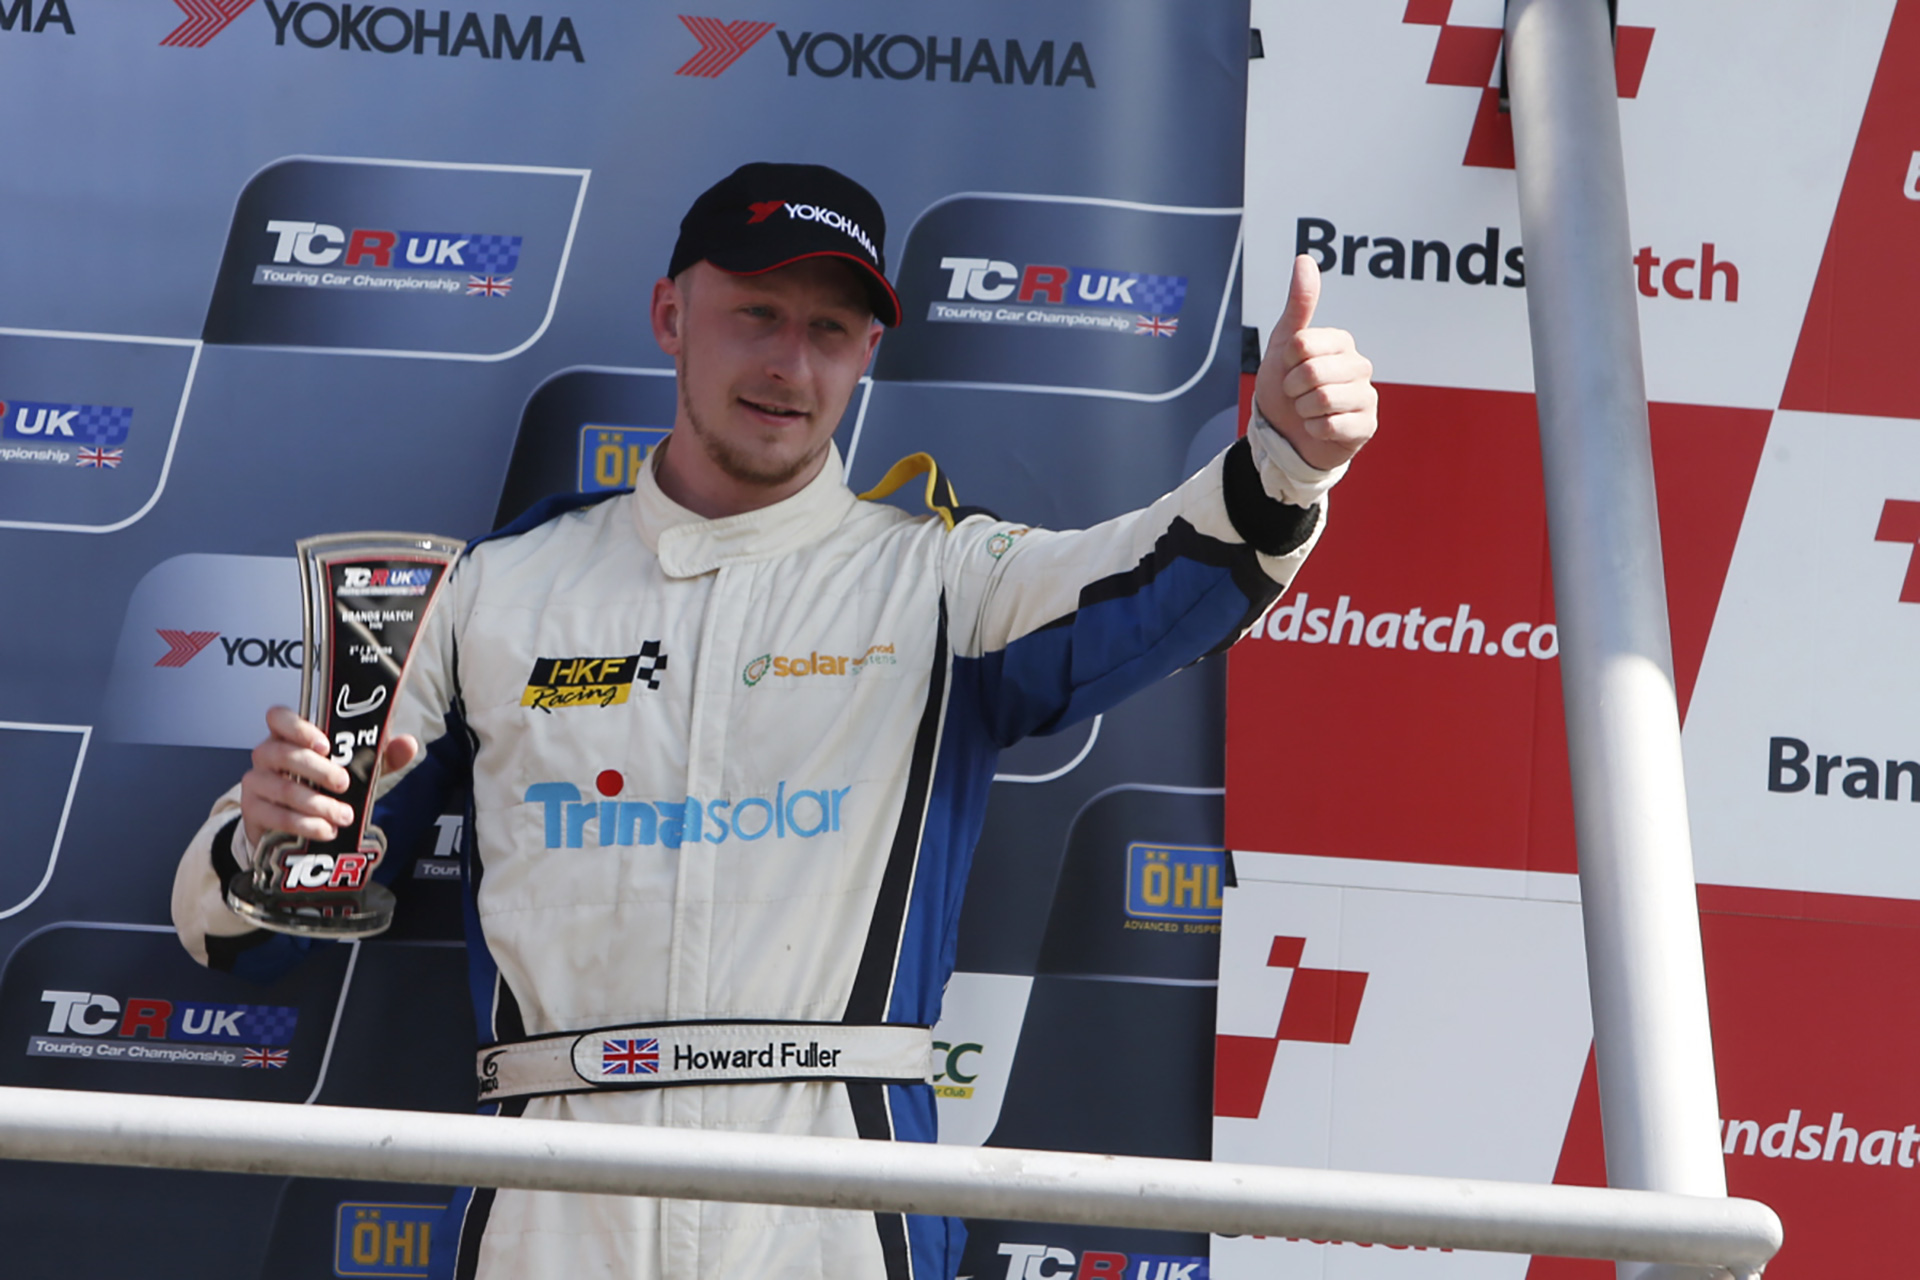 Series returnee Howard Fuller claims first TCR UK podium.